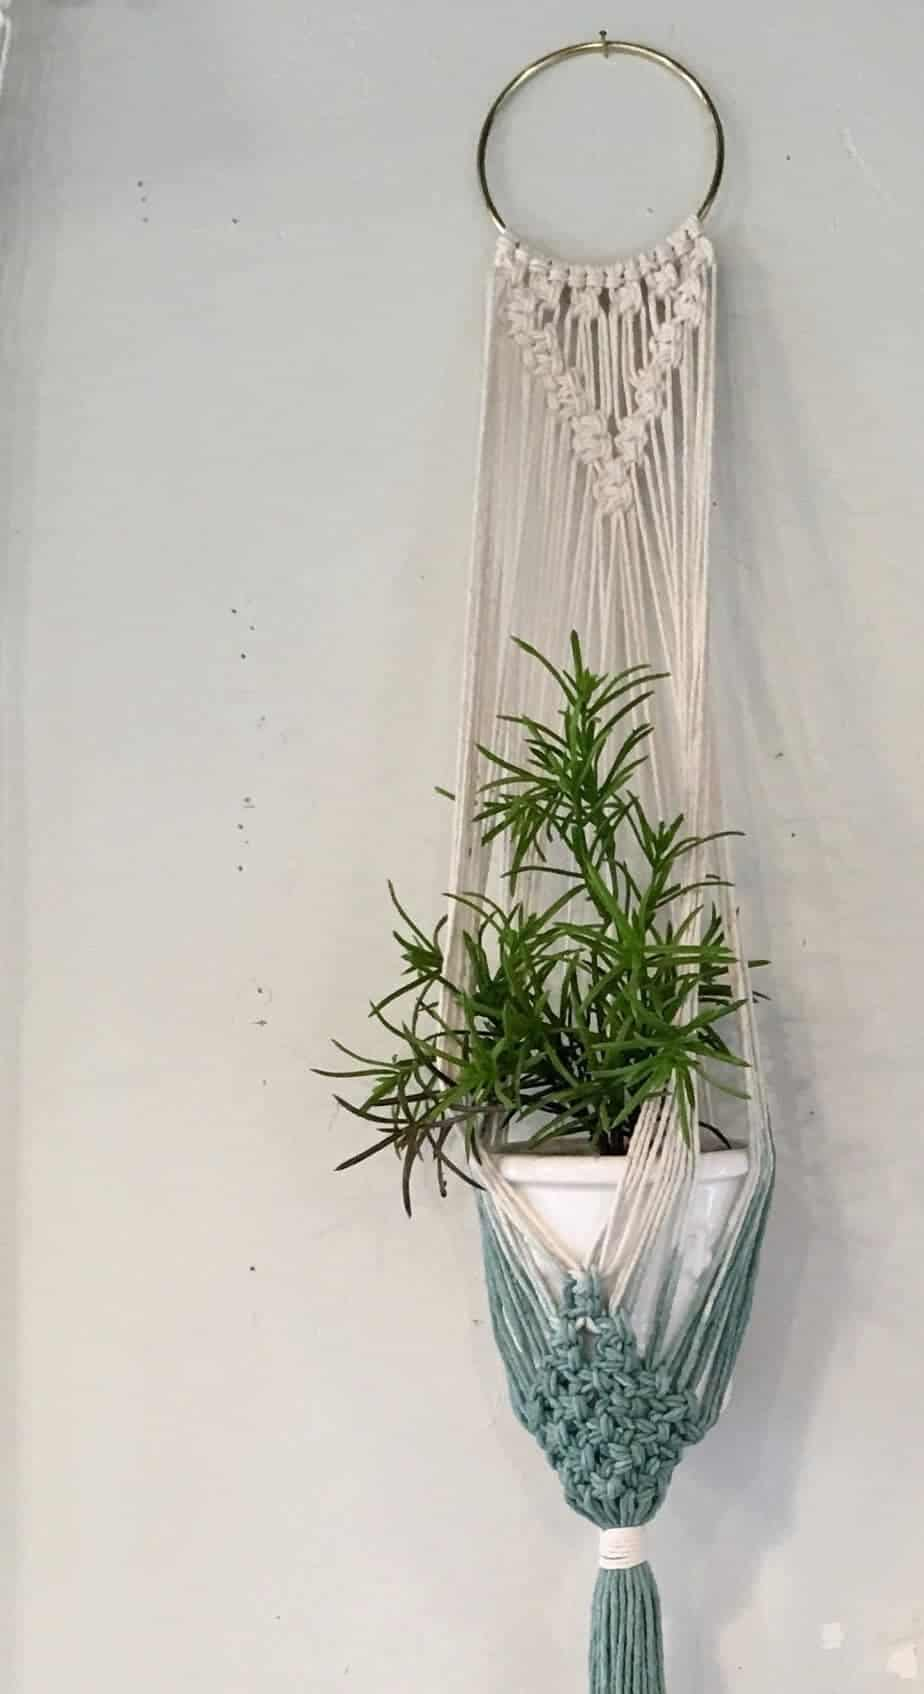 10 Hanging Plants and Ideas for Hanging Planters You'll ... on Plant Hanging Ideas  id=39231